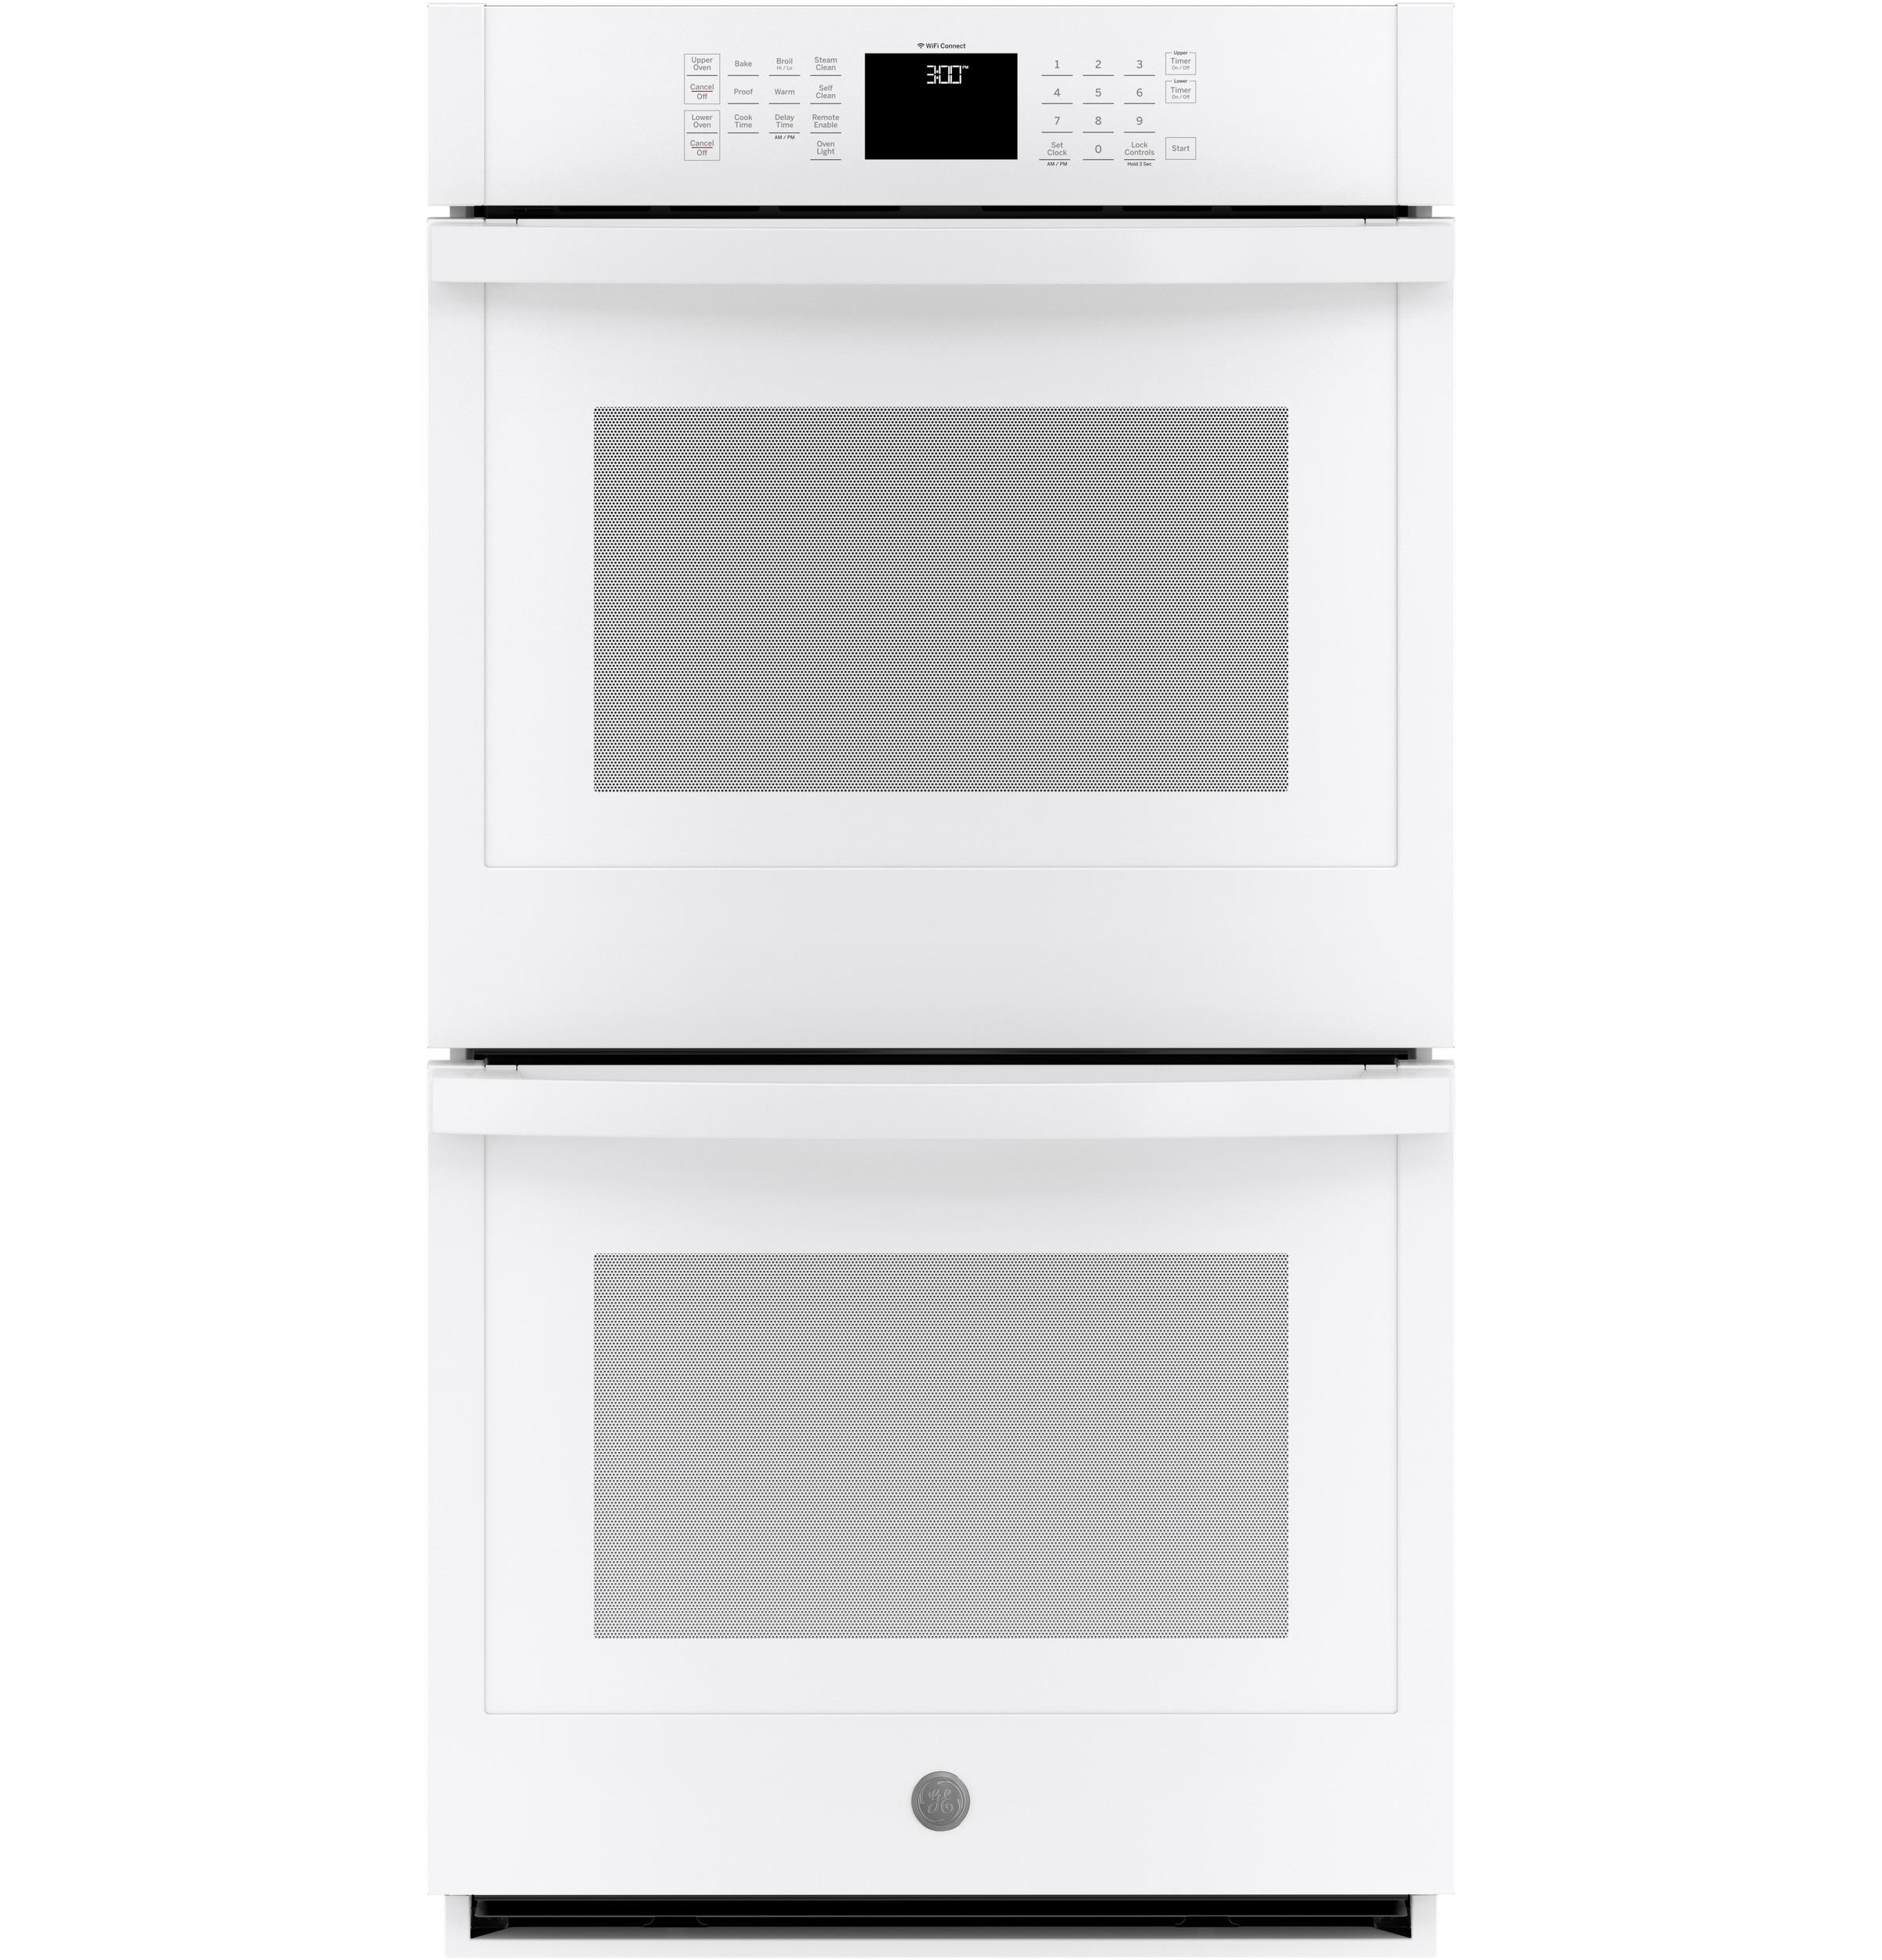 General Electric Ge R 27 Quot Built In Double Wall Oven